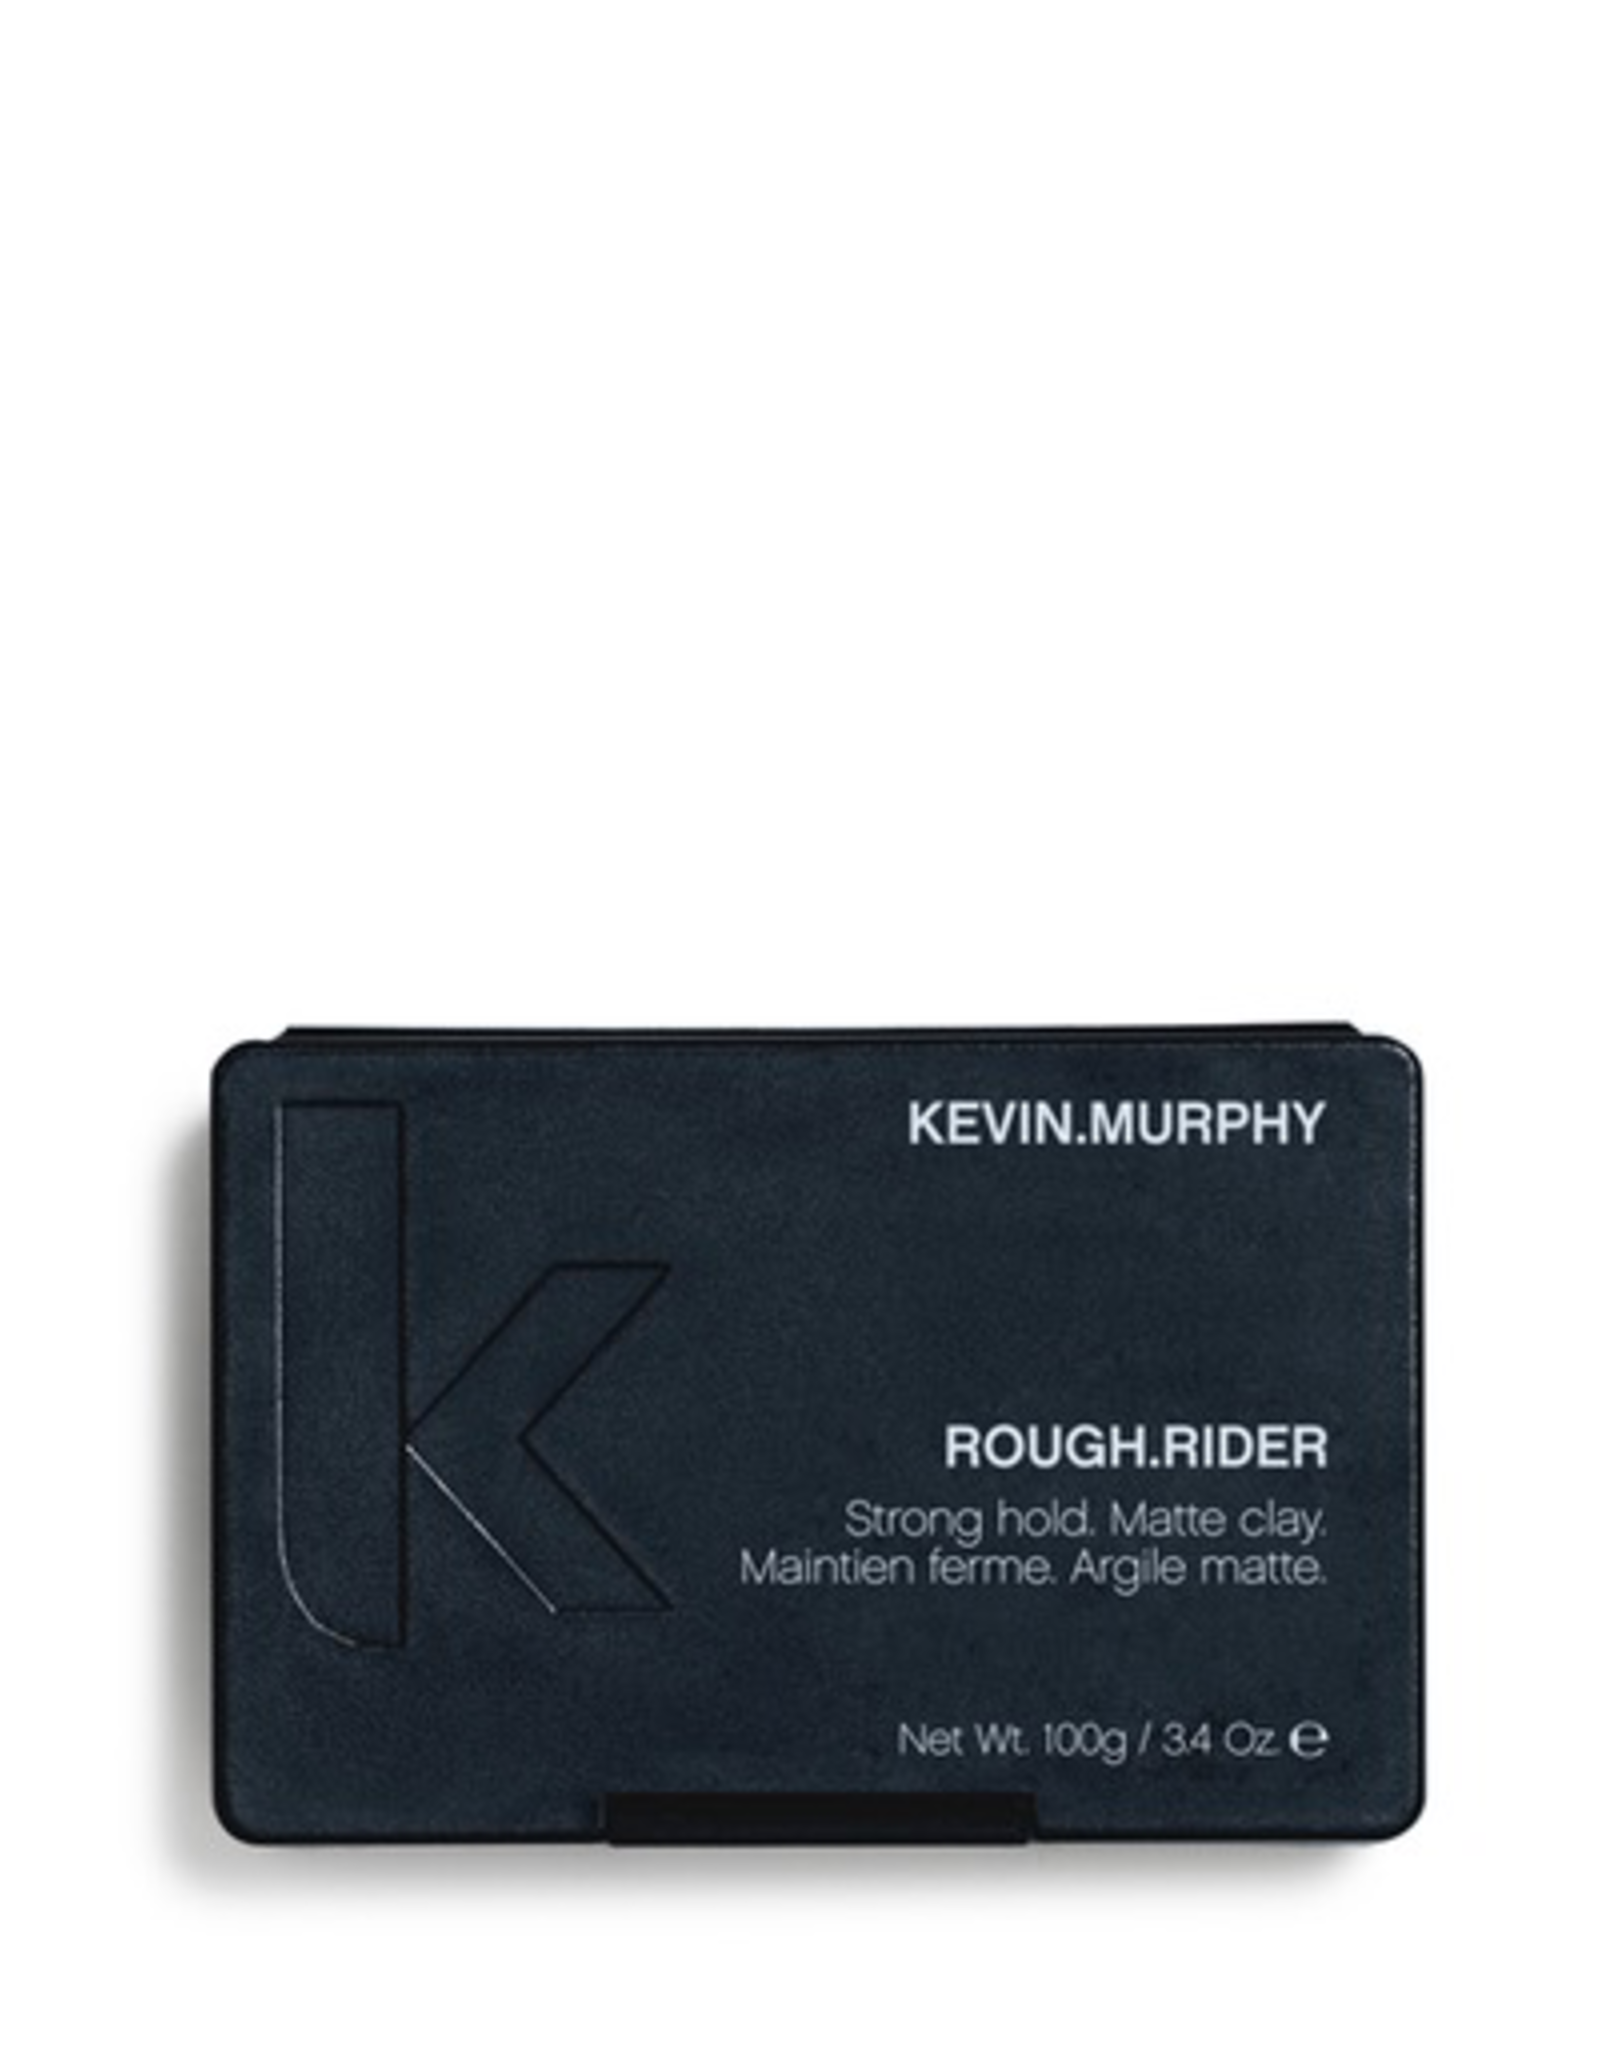 KEVIN.MURPHY Rough.Rider (30 g)